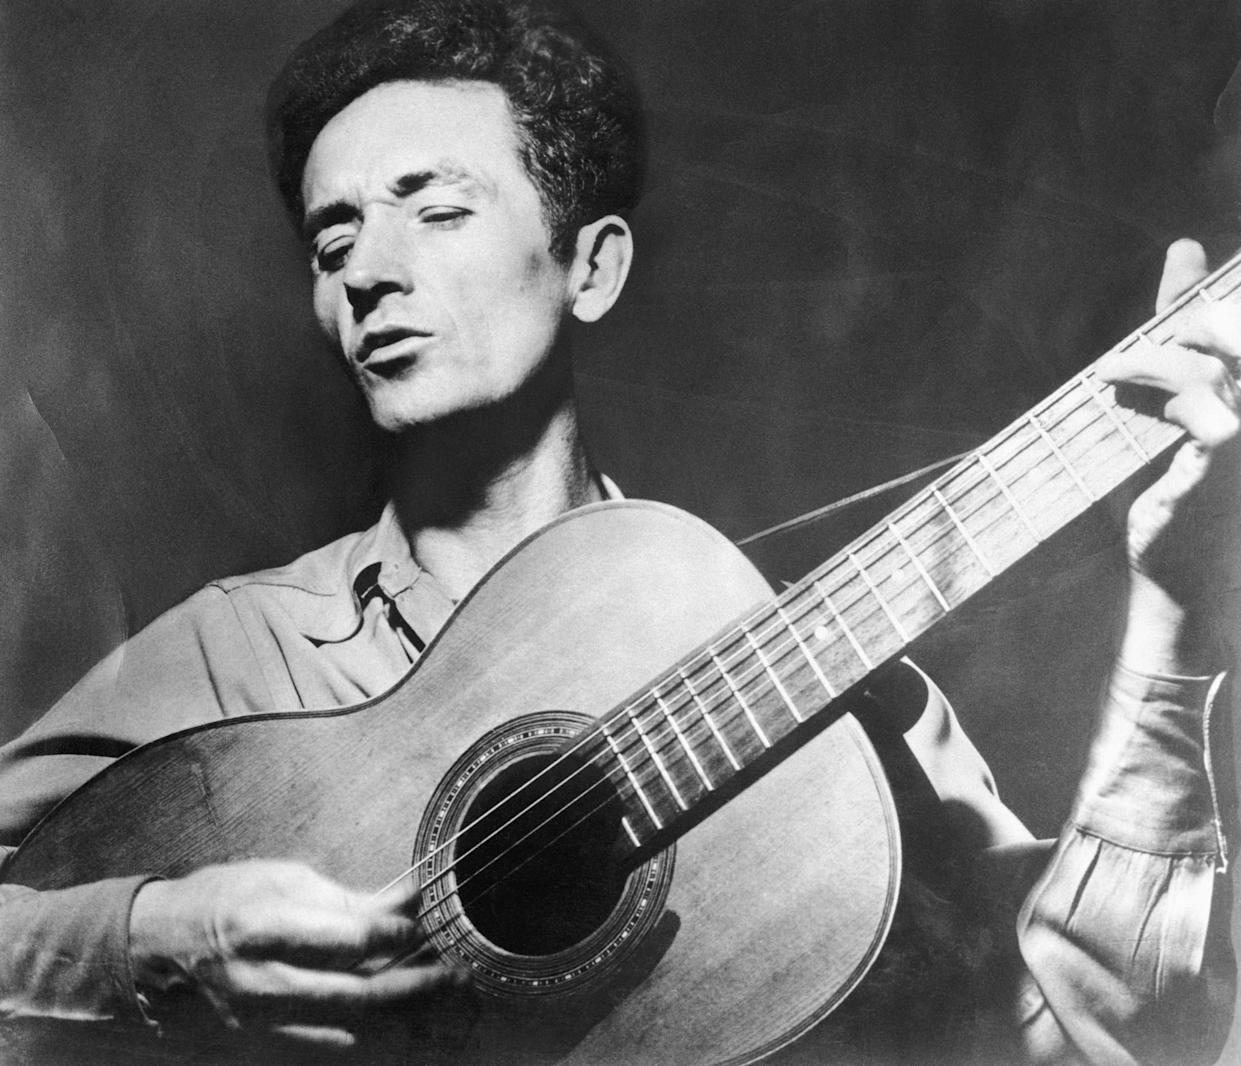 Folk singer Woody Guthrie. (Photo: Bettmann Archive via Getty Images)